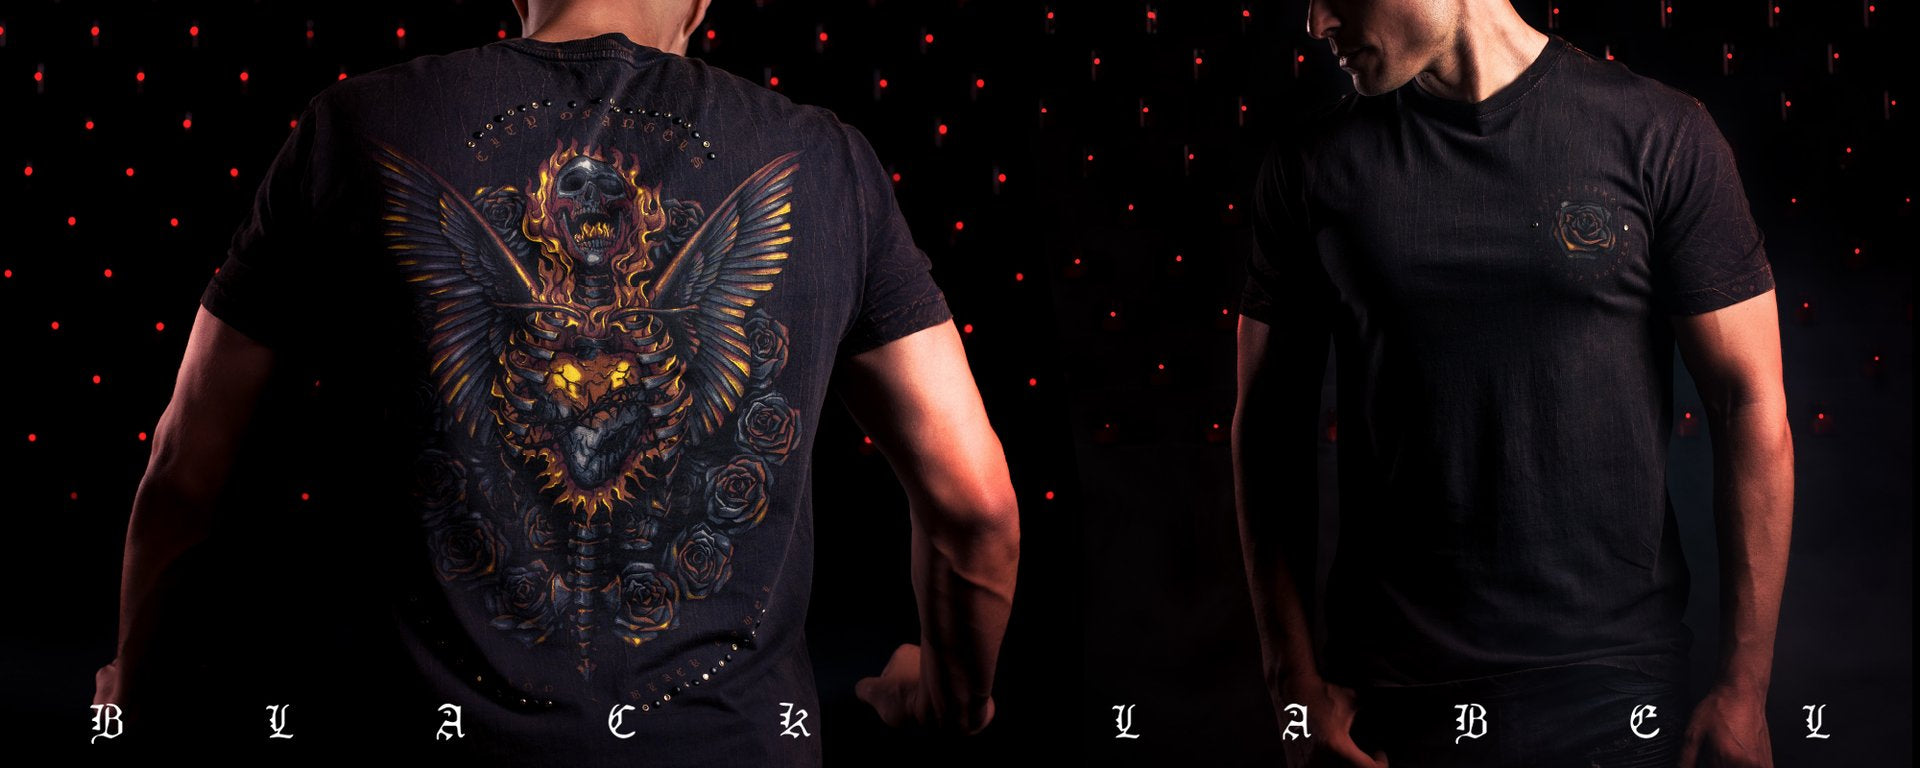 affliction clothing supreme quality tees for the military art